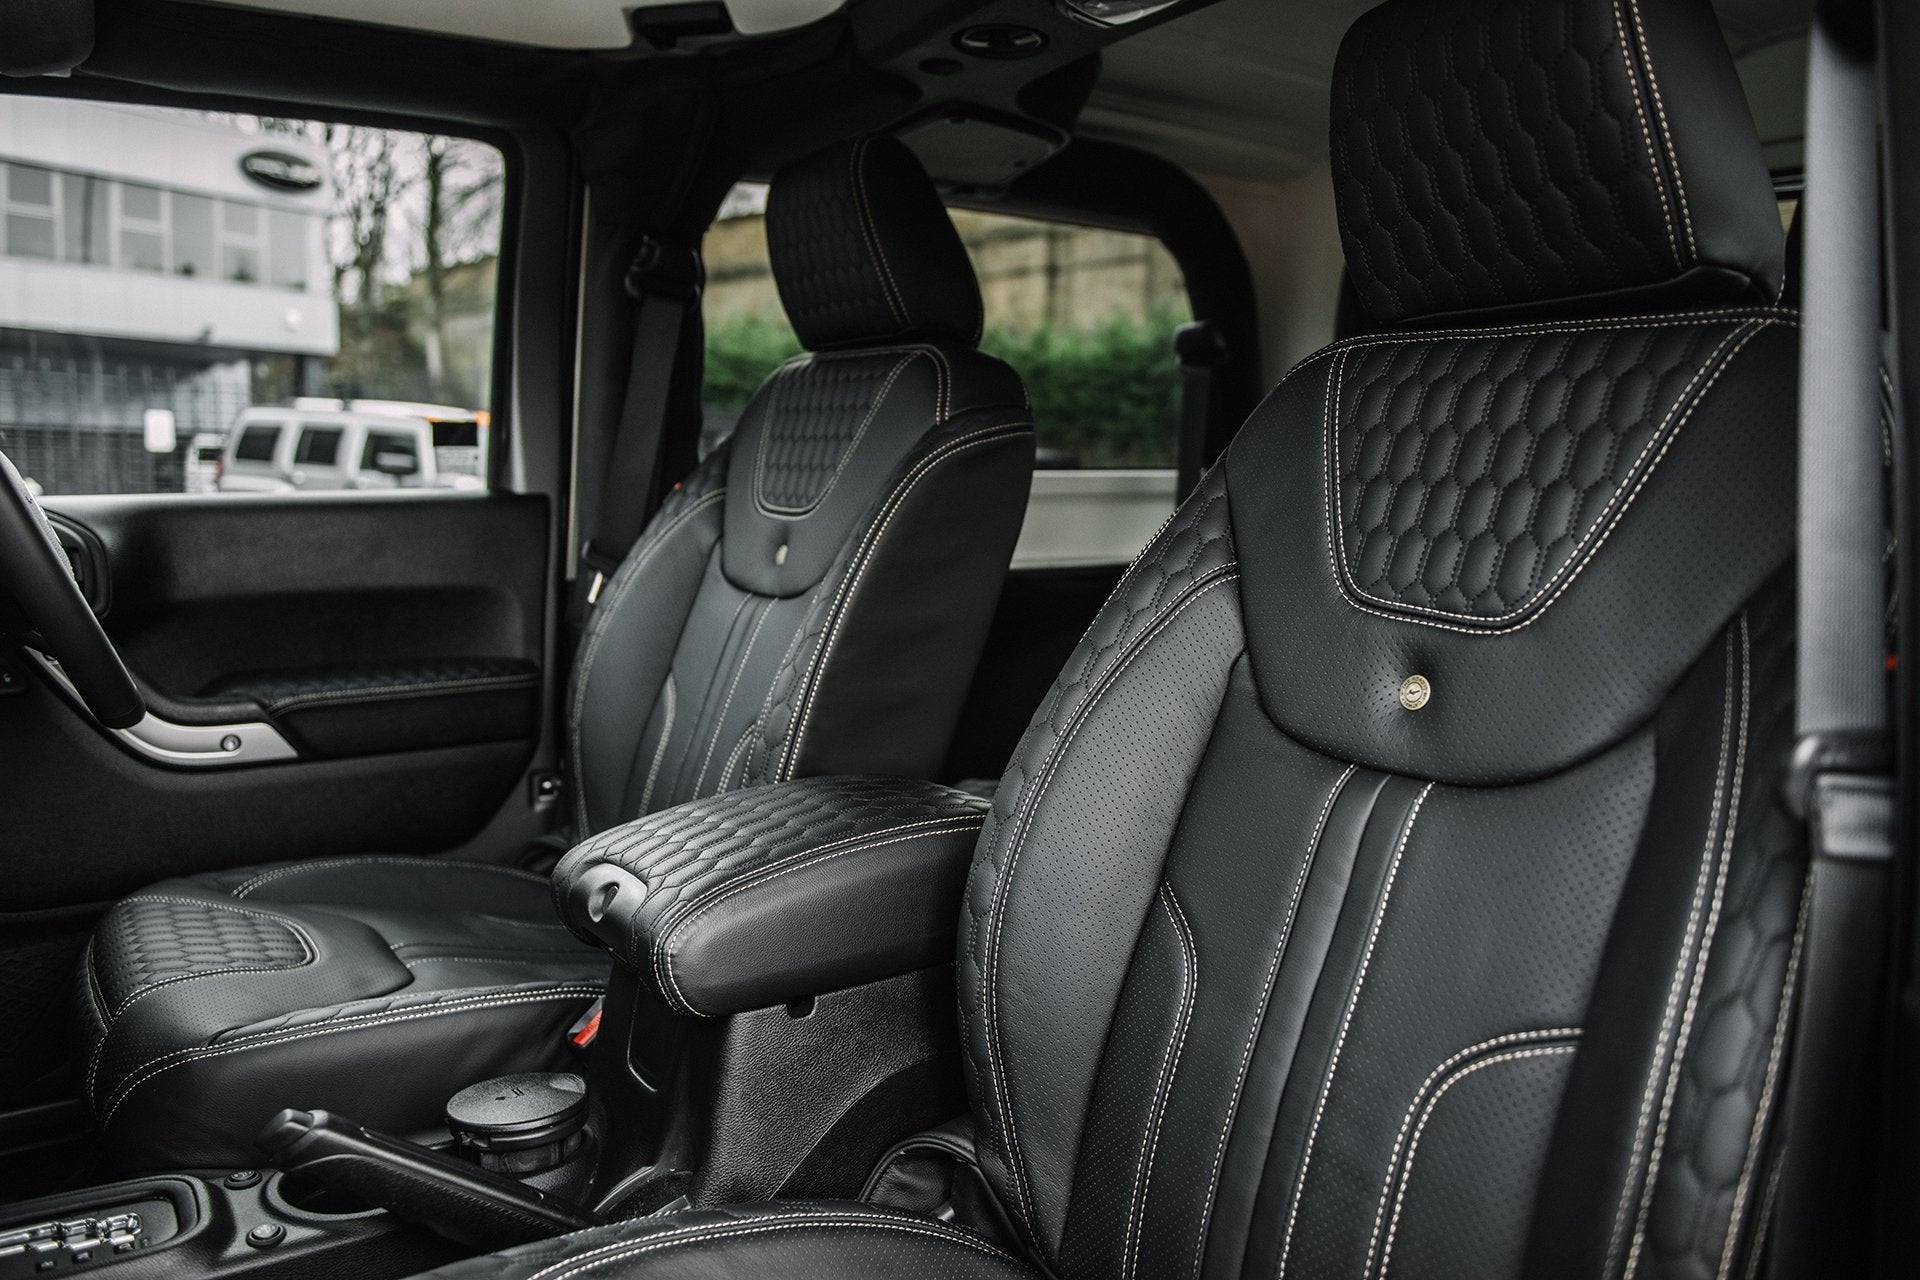 Jeep Wrangler Jk (2011-2018) 2 Door Leather Interior by Chelsea Truck Company - Image 1334